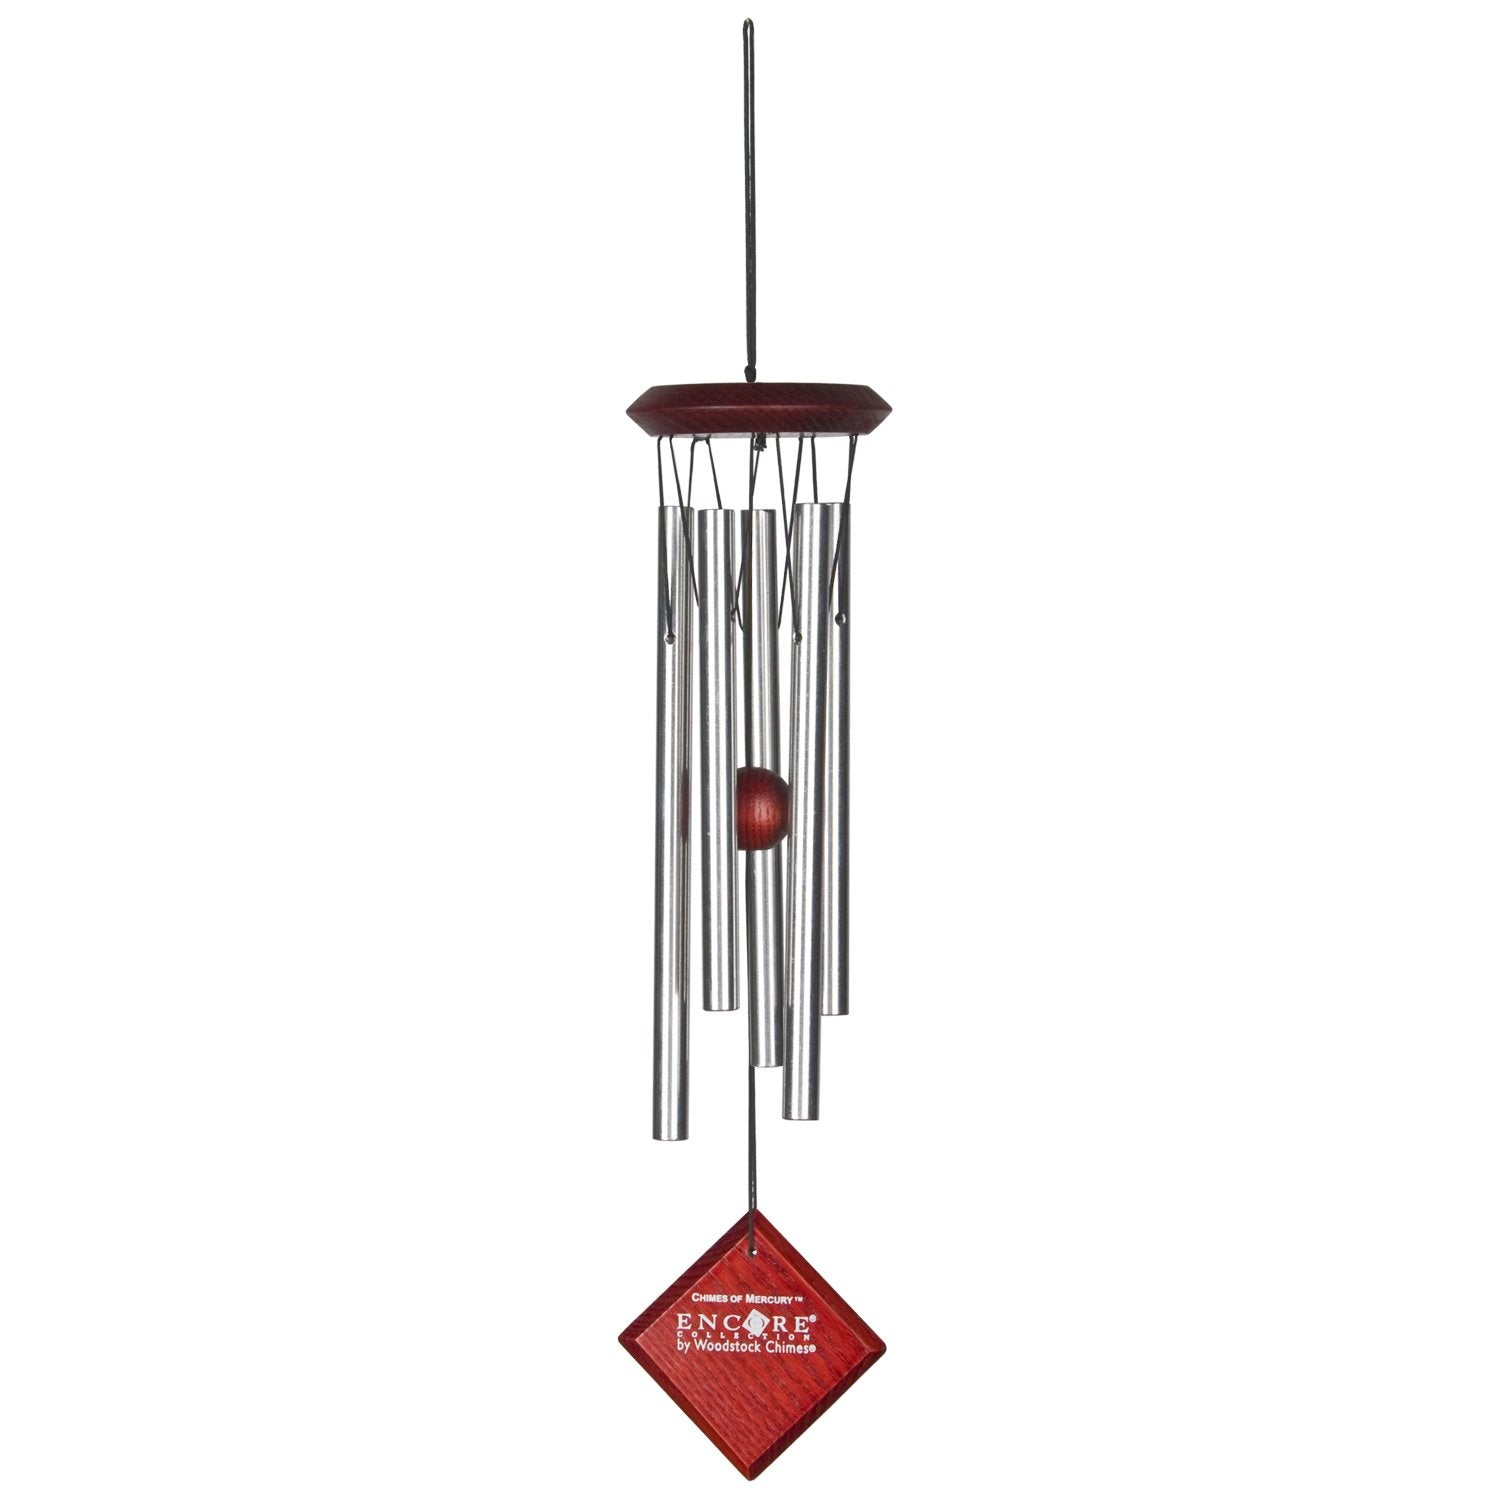 Encore Chimes of Mercury - Silver full product image